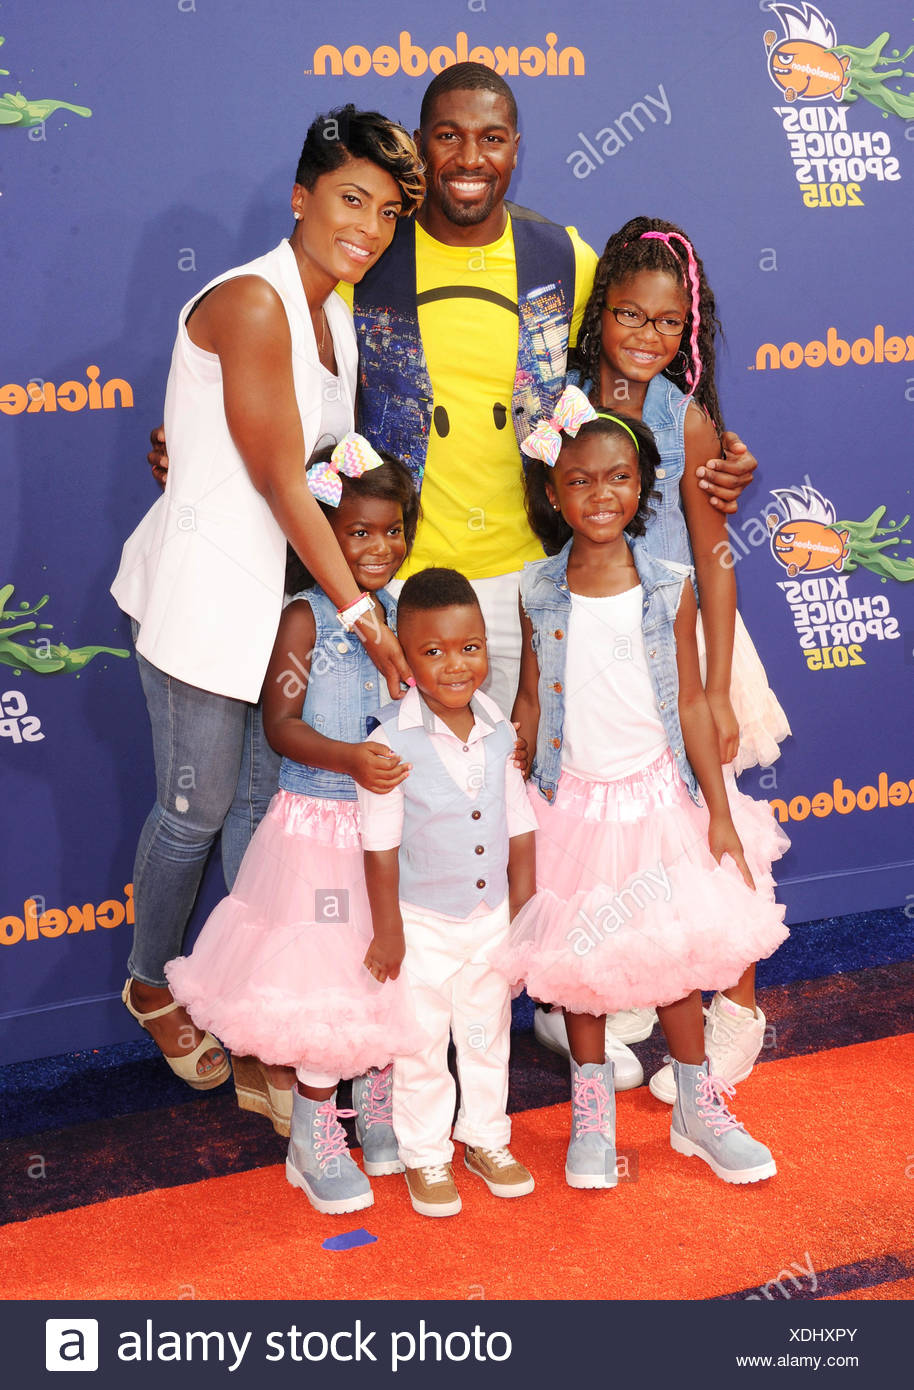 NFL player Greg Jennings and family arrive at the Nickelodeon Kids' Choice Sports Awards 2015 at UCLA's Pauley Pavilion on July 16, 2015 in Westwood, California., Additional-Rights-Clearances-NA - Stock Image